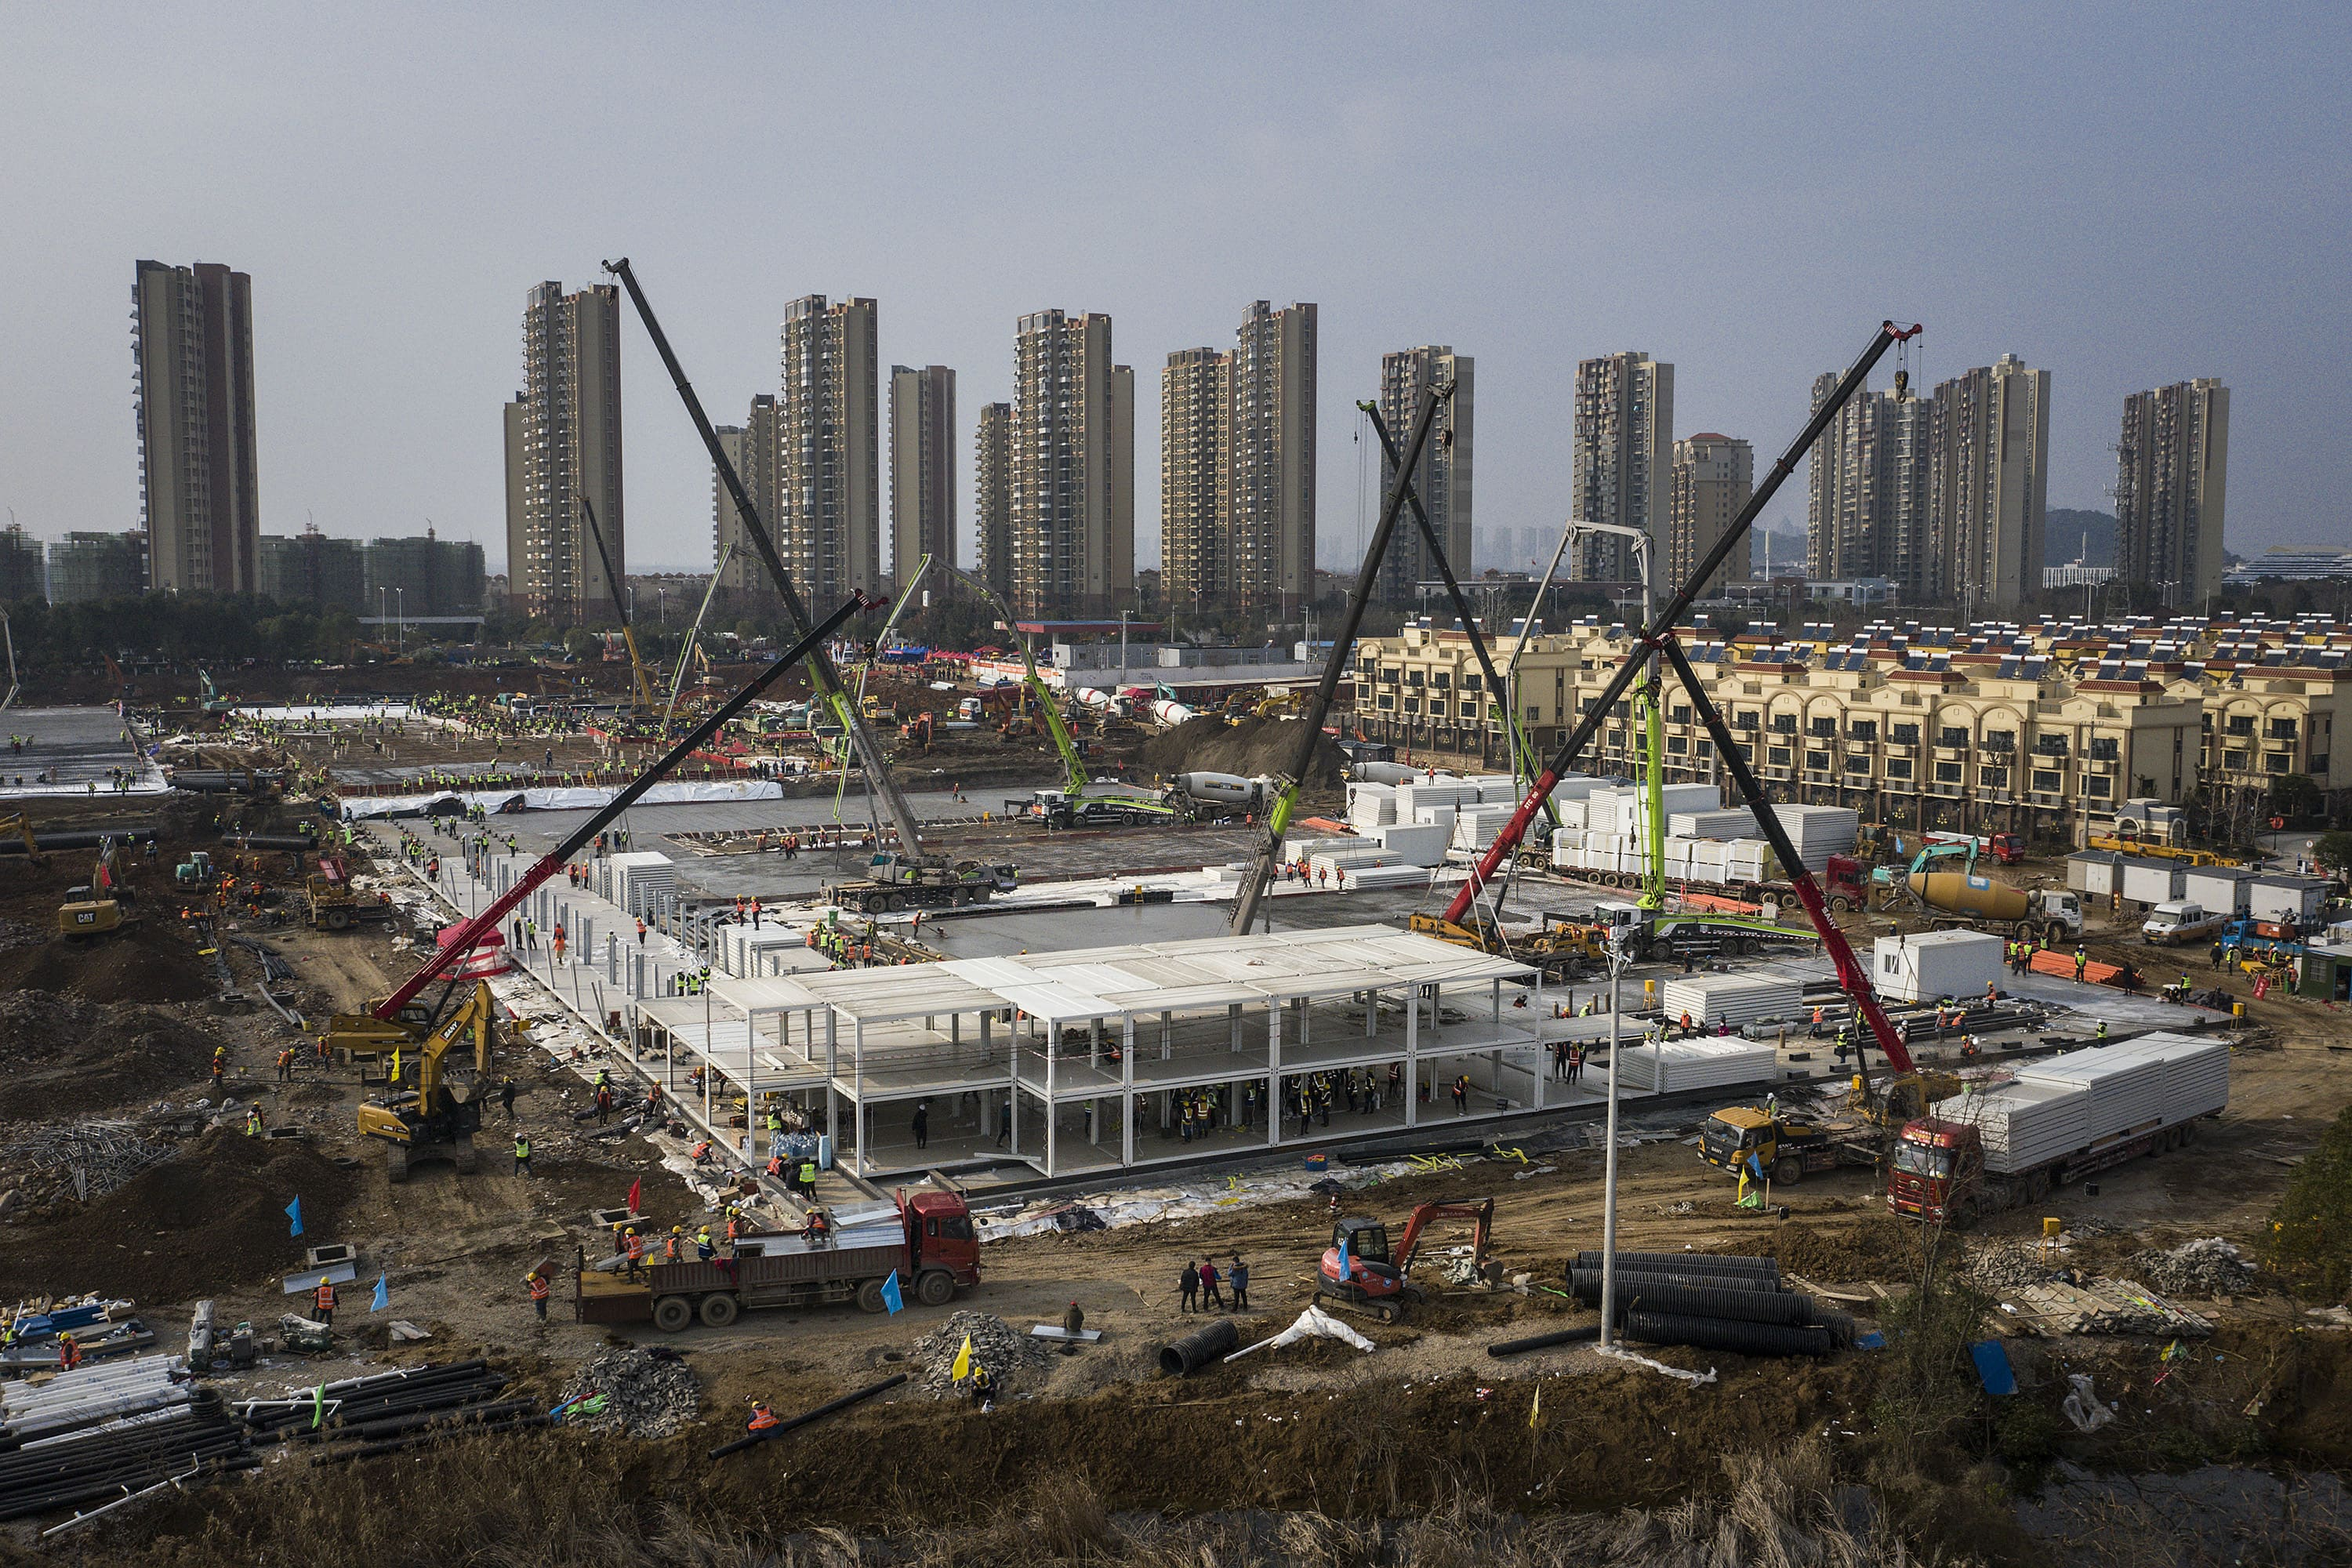 In pictures: China builds two hospitals in days to combat coronavirus